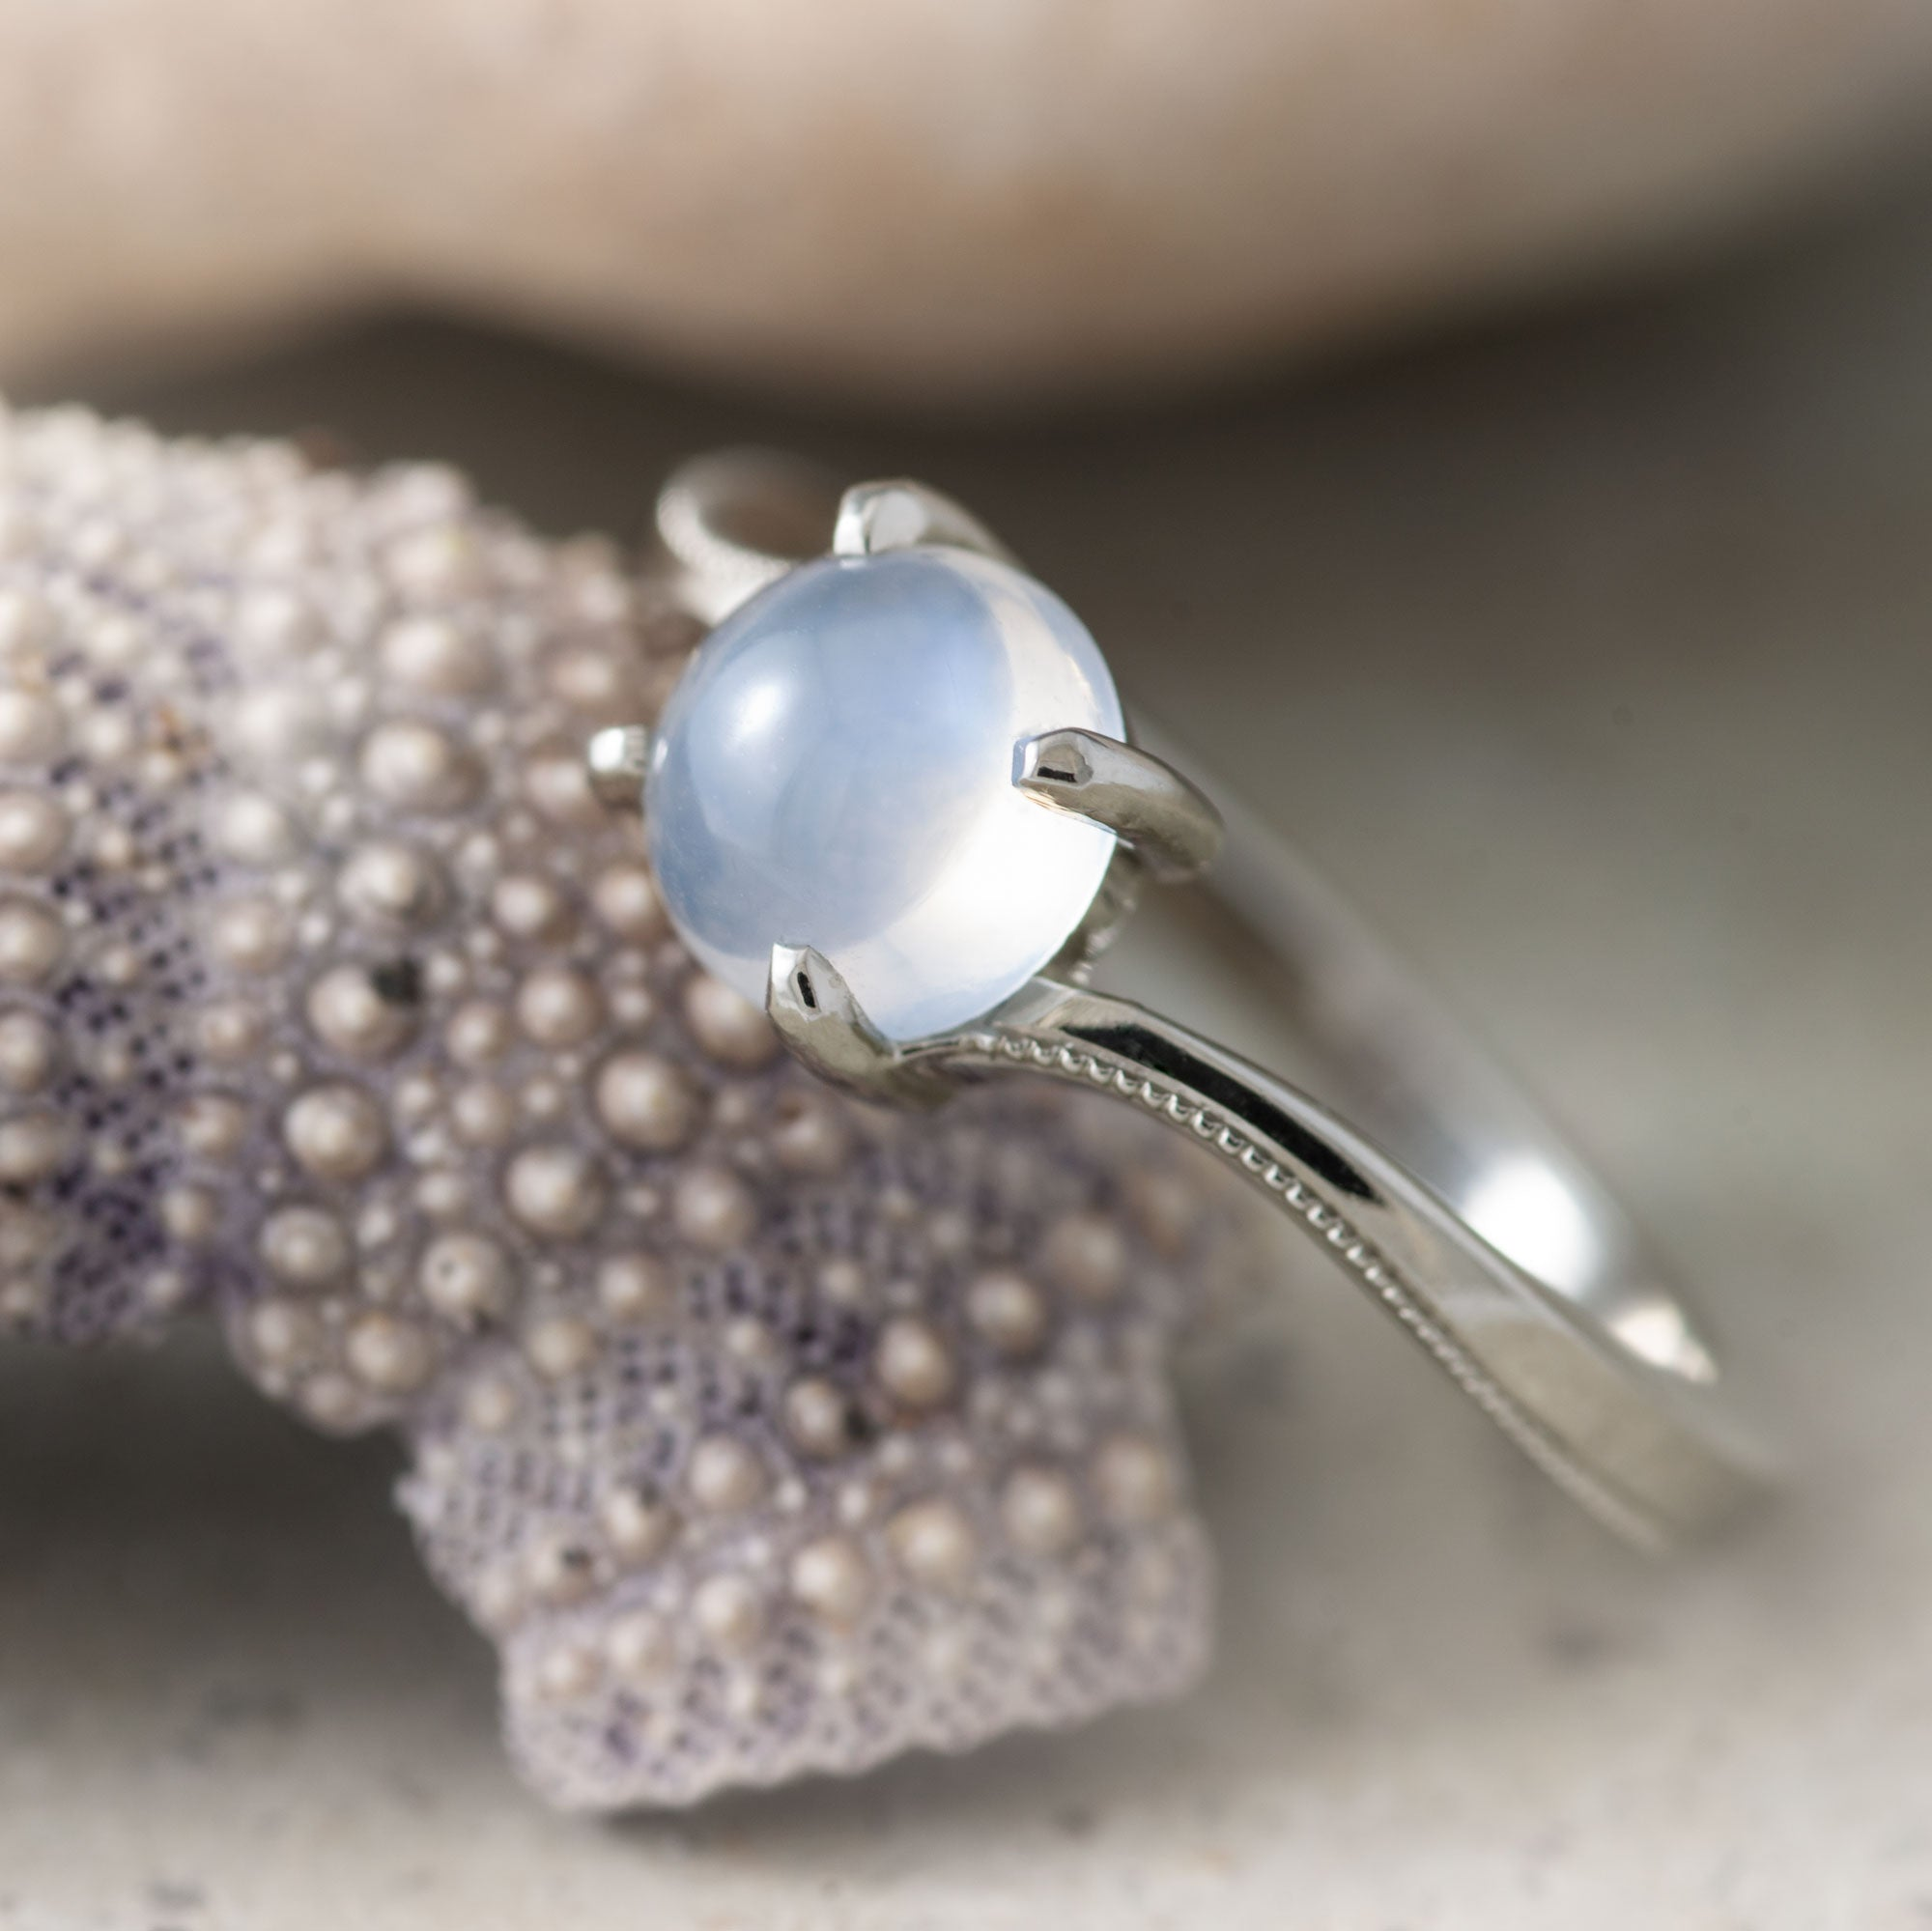 14kt white gold aisha moonstone cabochon solitaire engagement ring millgrain handcrafted era design vancouver